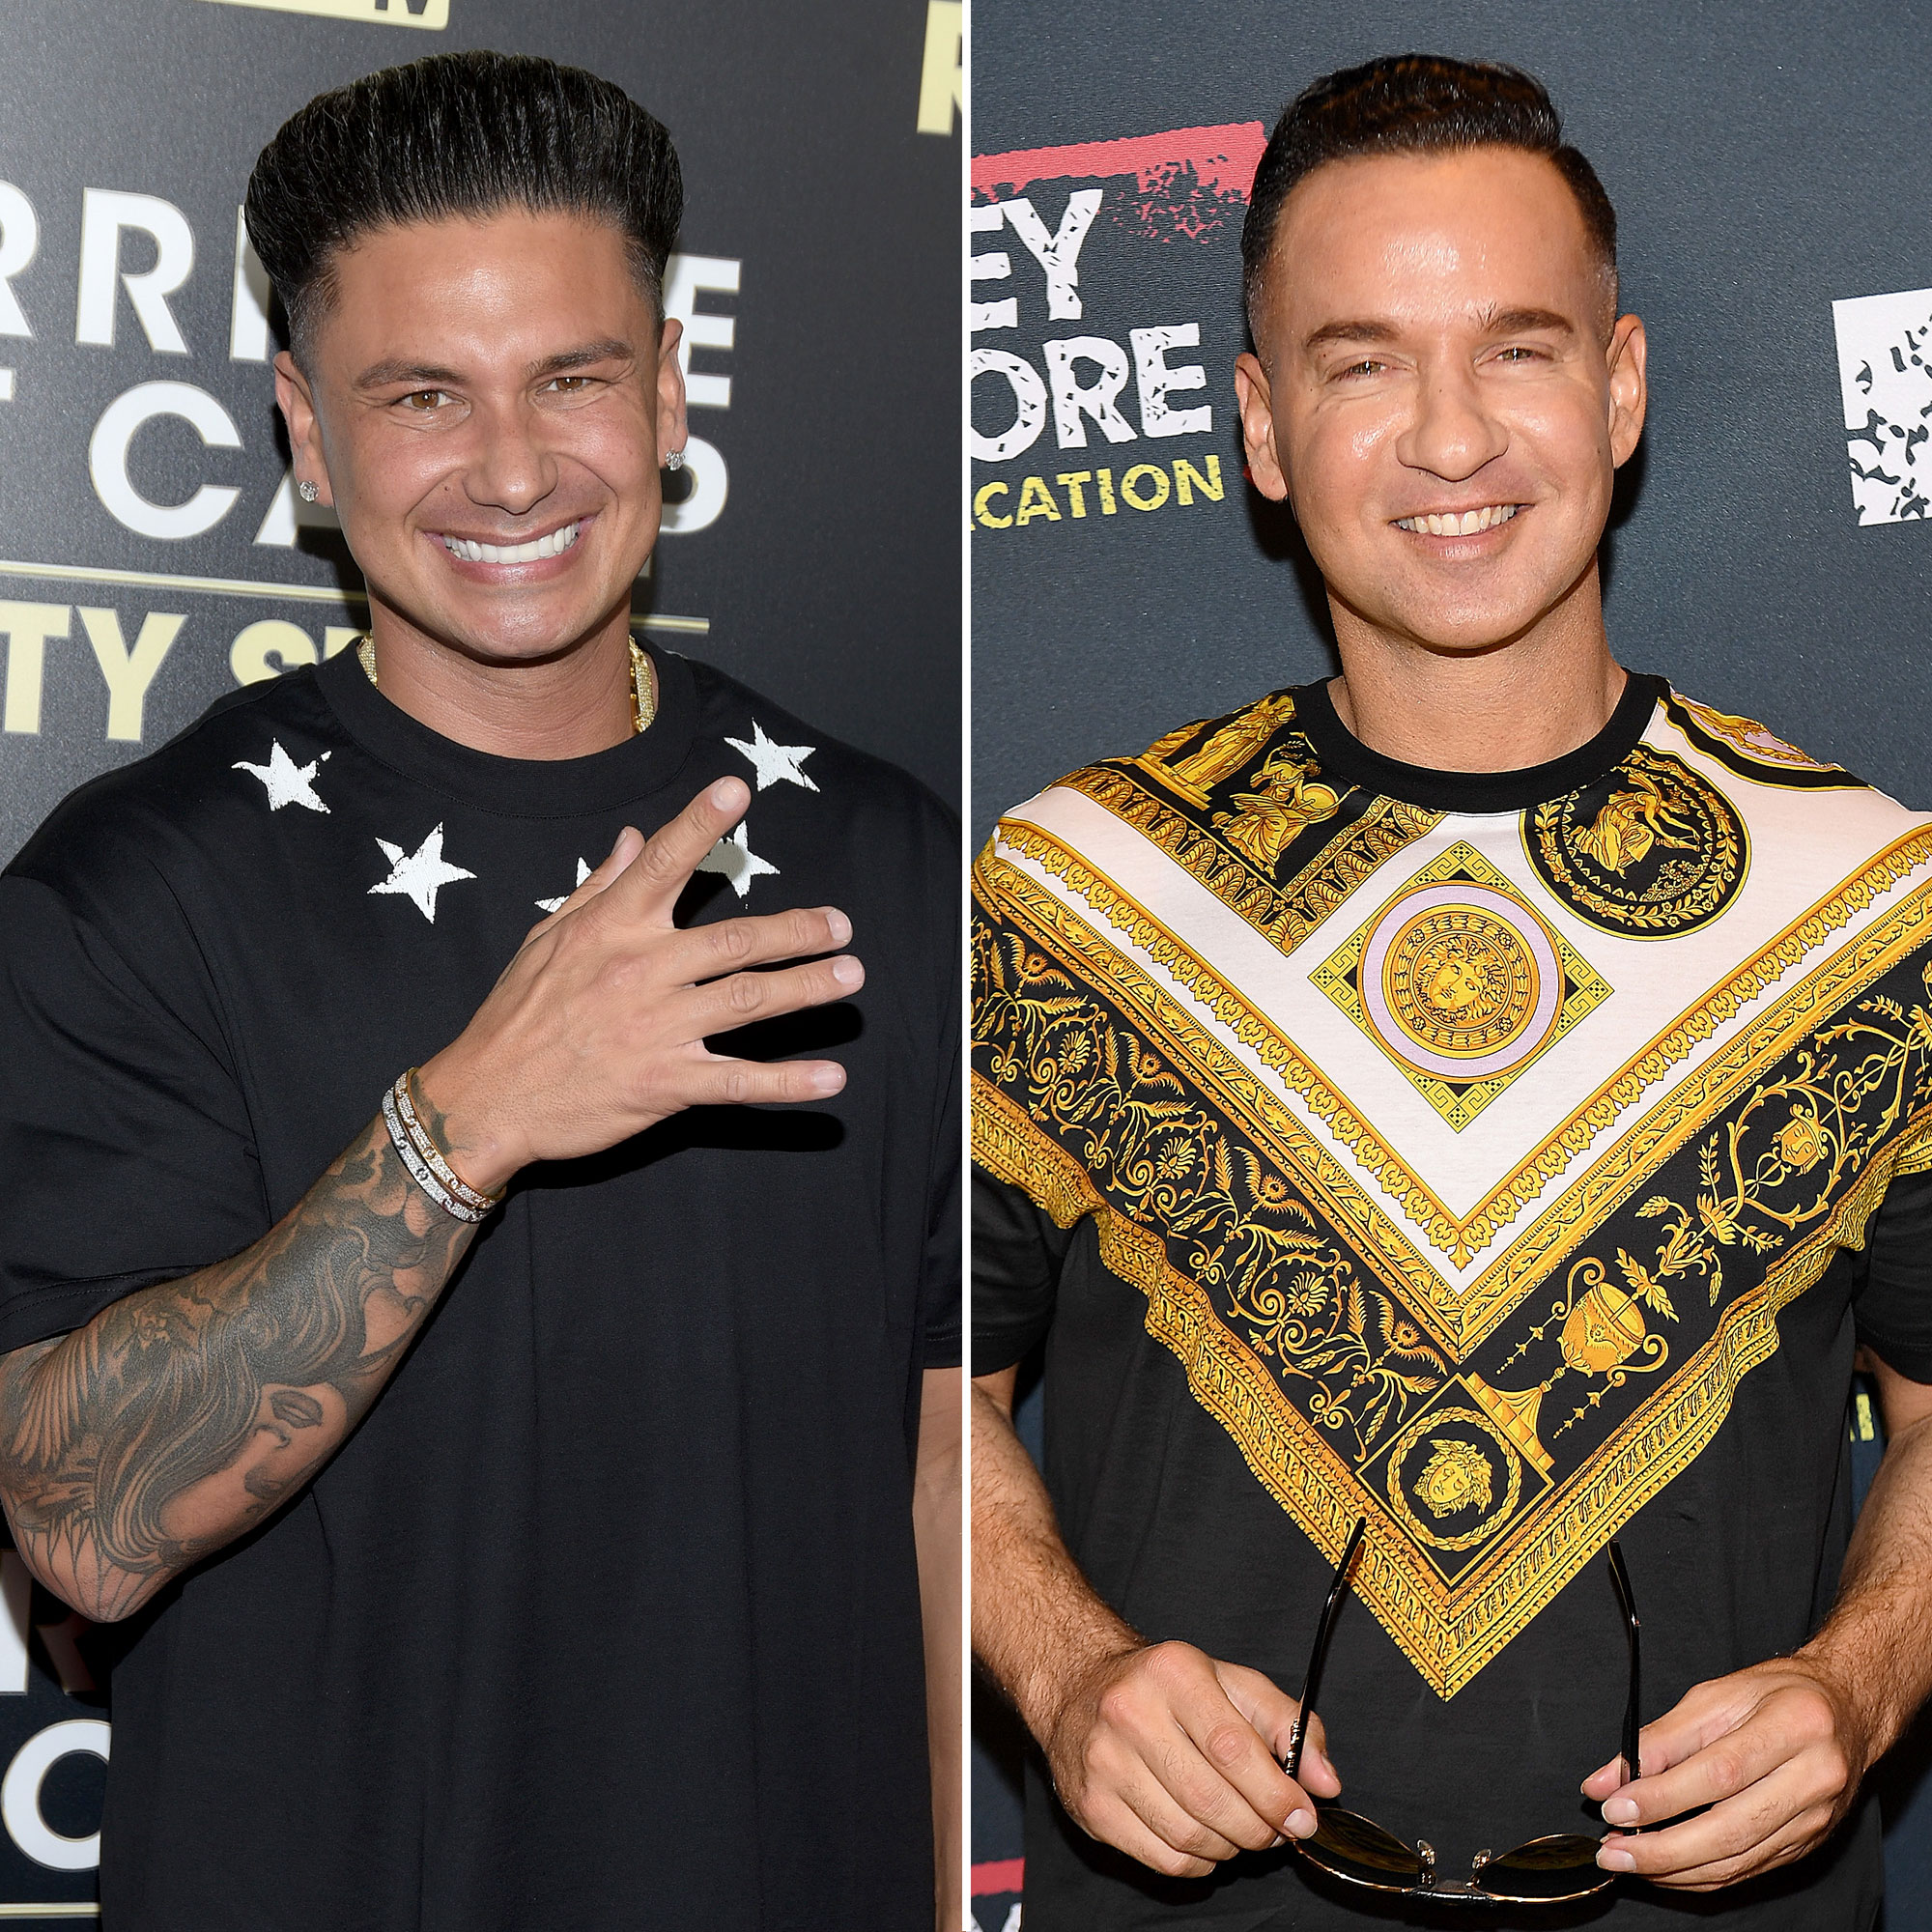 Pauly D and Mike Sorrentino Scrabble in Jail Split - Pauly D and Mike Sorrentino